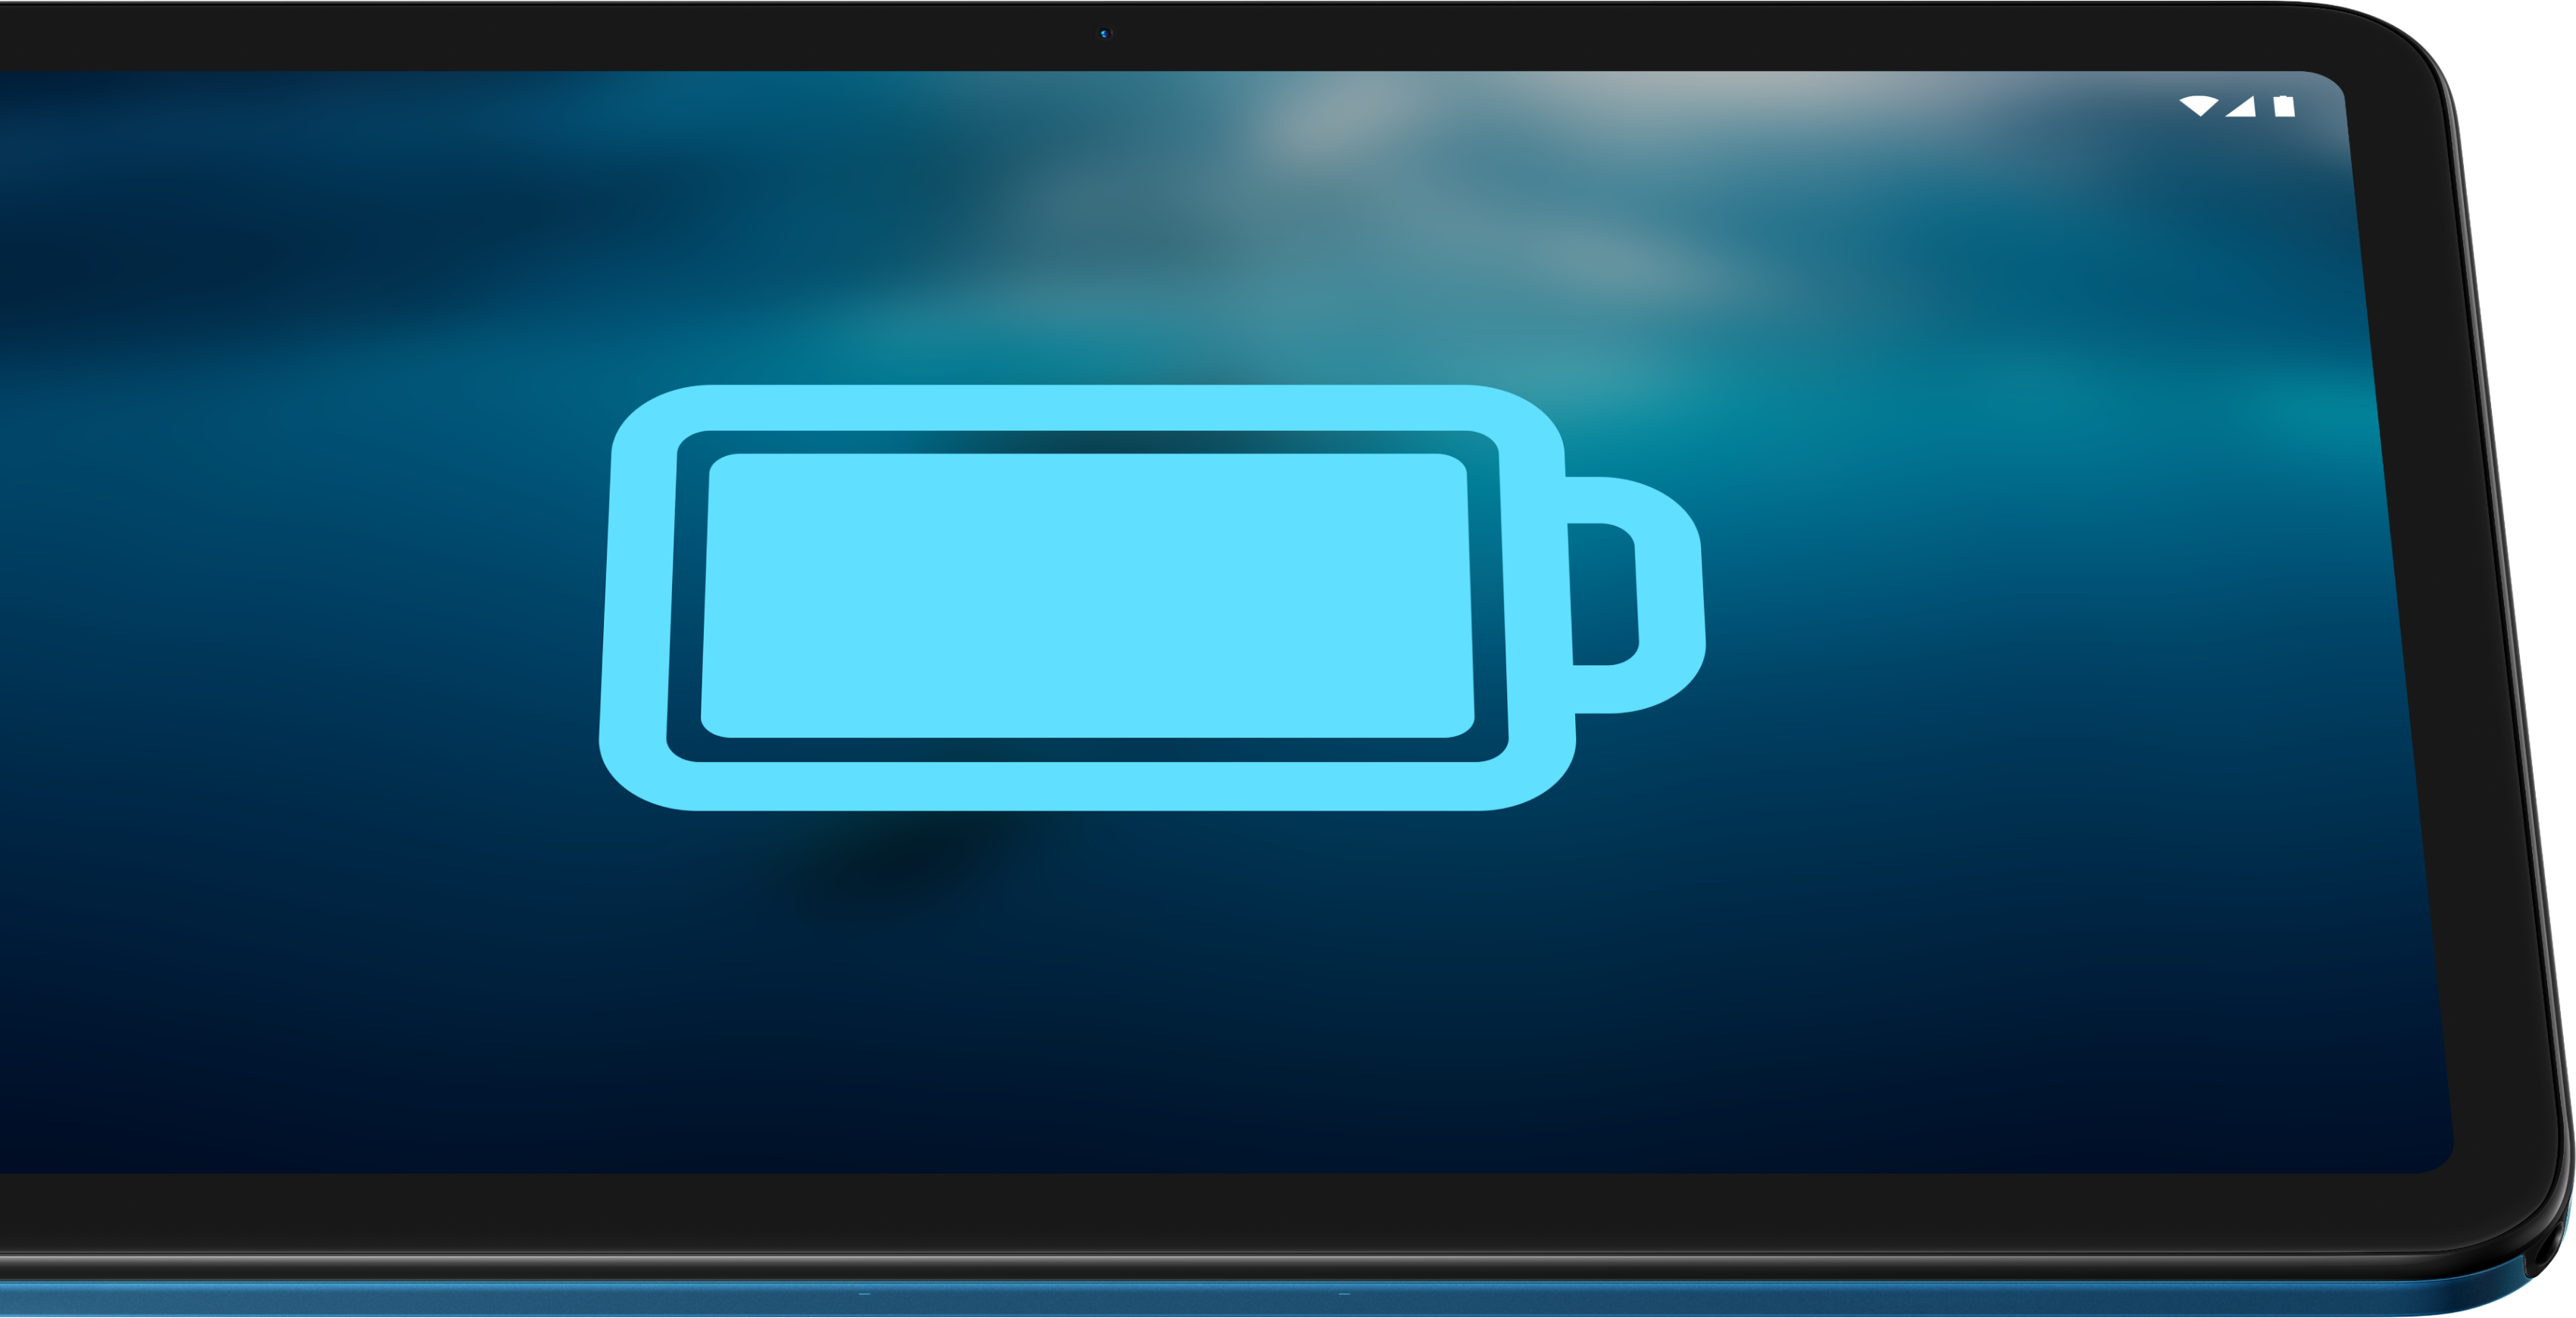 Fully charged batter icon displayed on the Nokia T20 tablet